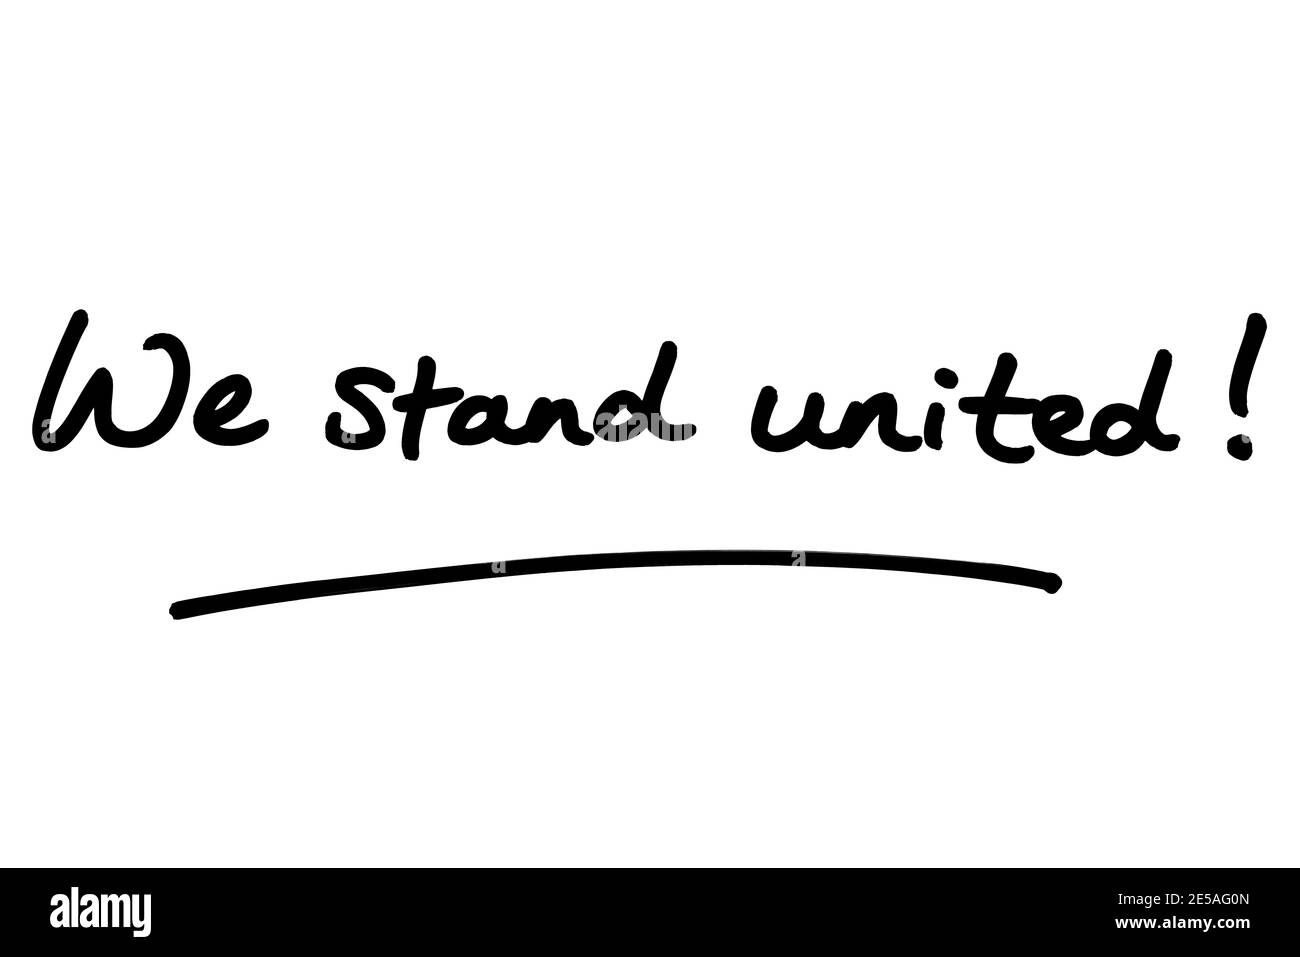 We stand united! handwritten on a white background. Stock Photo